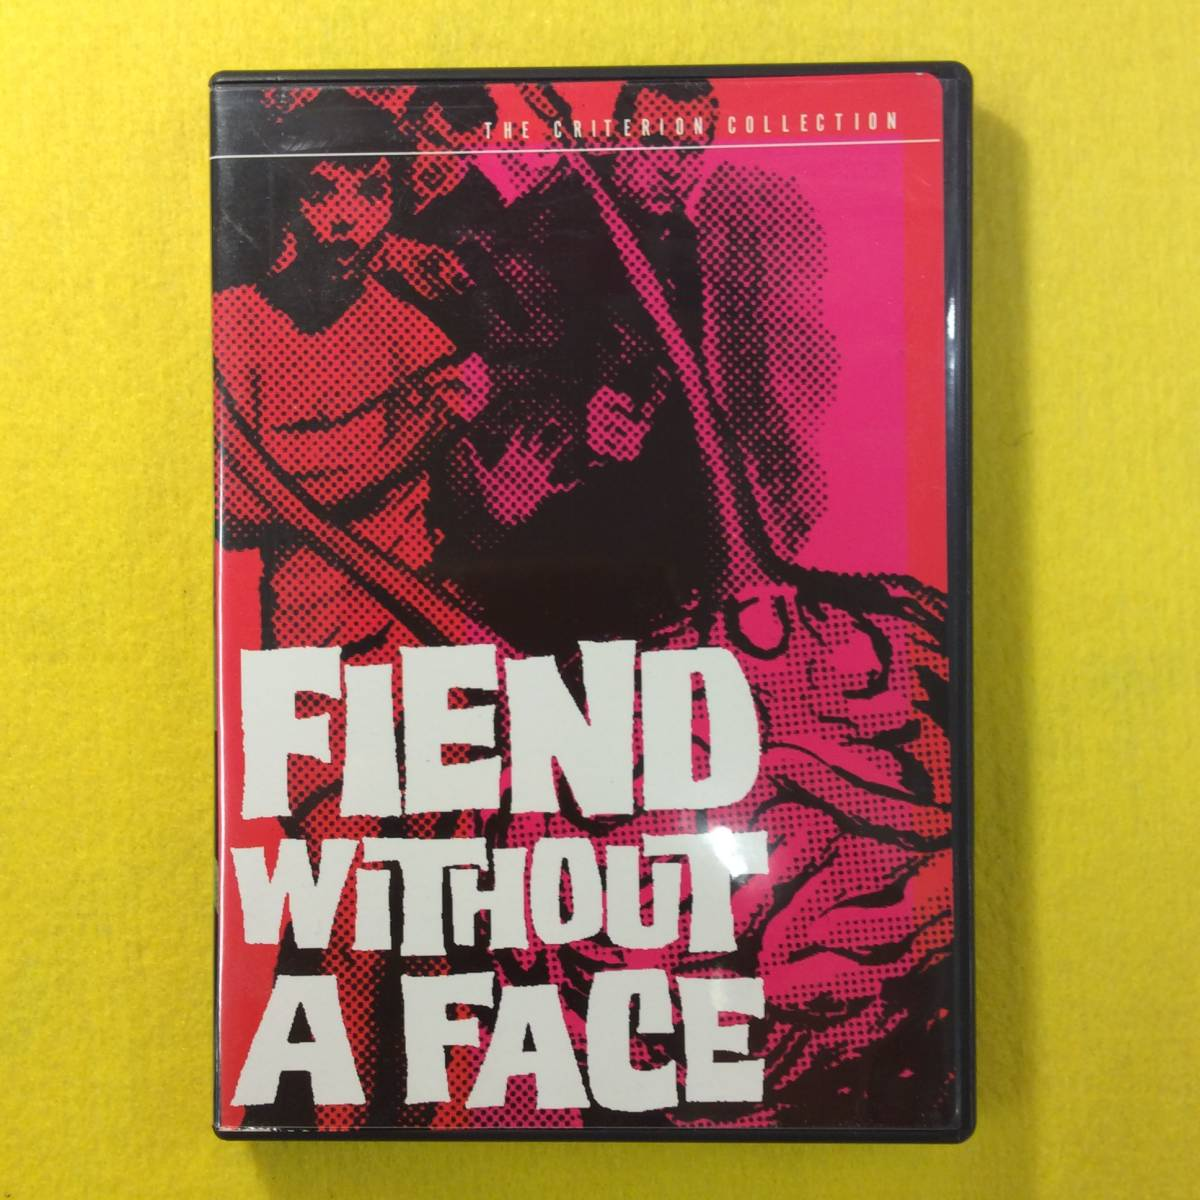 【DVD】FIEND WITHOUT A FACE・輸入盤 リージョン1 SF SciFi 映画_画像1